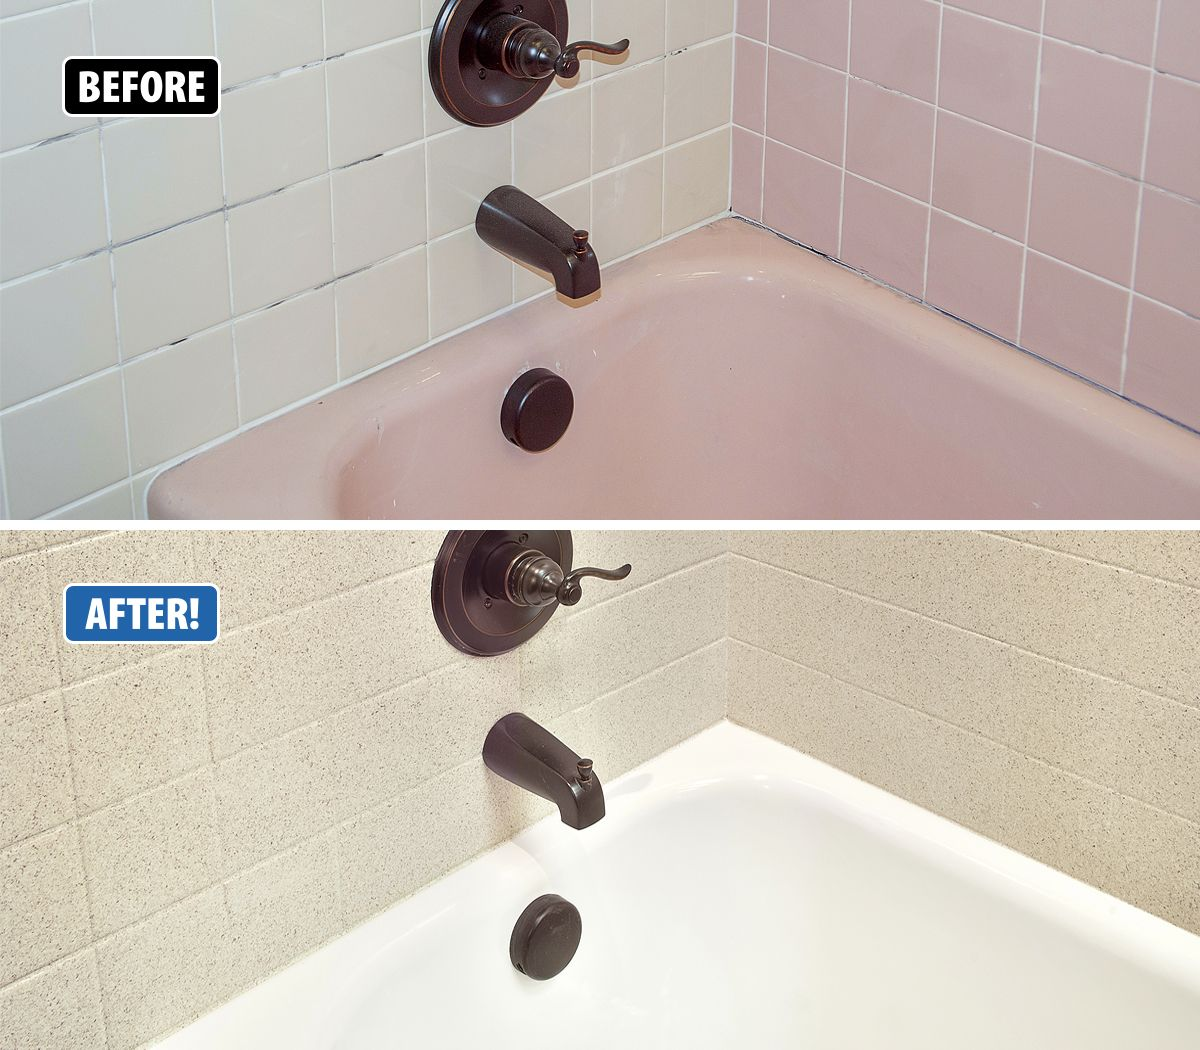 Excellent Paint Tub Big Paint For Tubs Rectangular Bathroom Refinishers Painting Your Bathtub Old Bath Tub Painting SoftReglazing Bathtub Is Your Tub And Tile Surround Outdated? Back In The Day, Pink ..